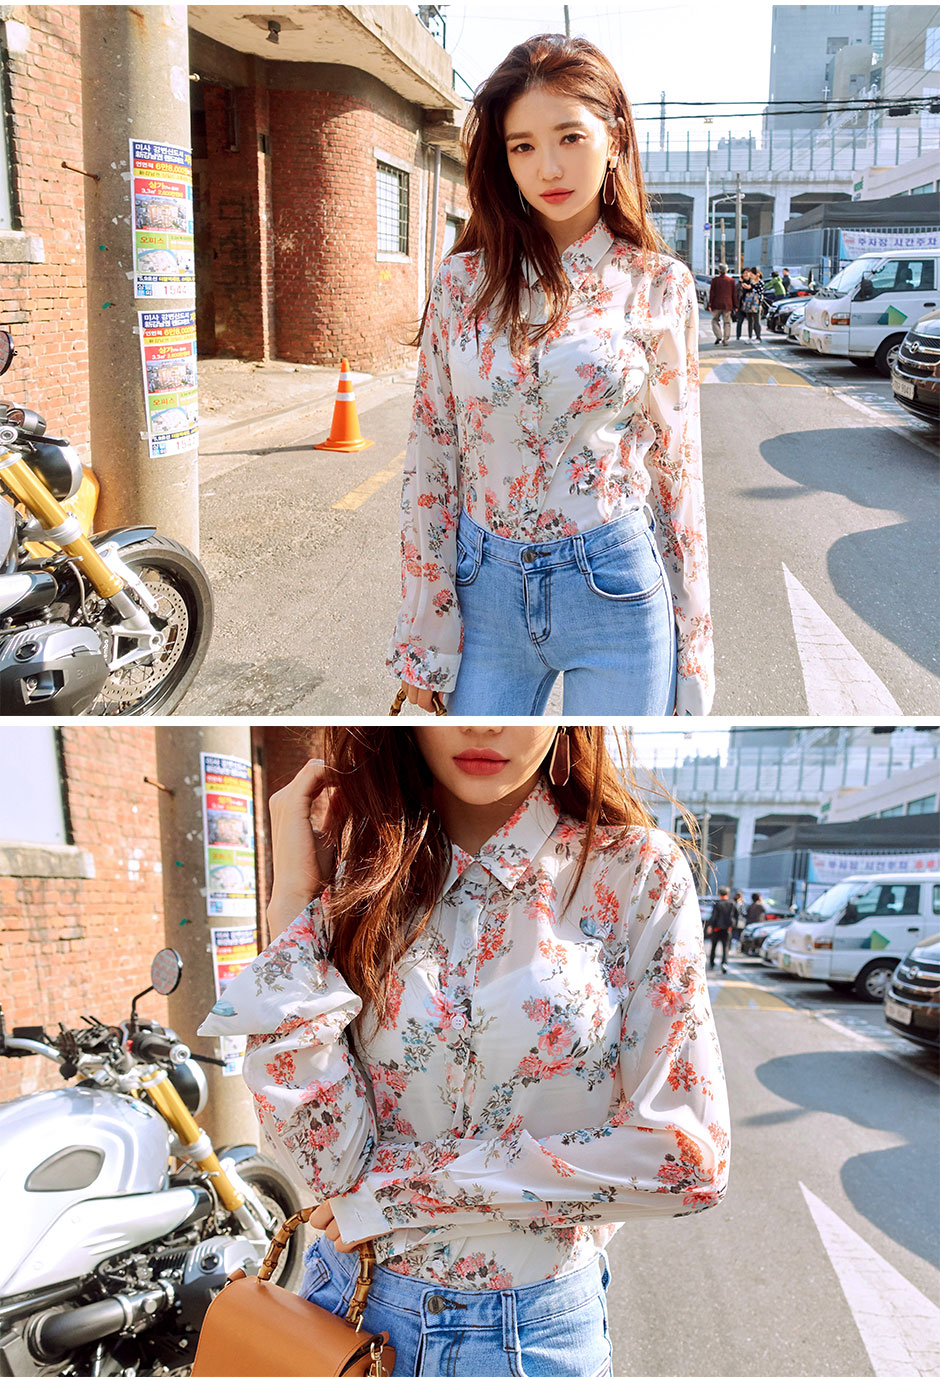 //cdn.nhanh.vn/cdn/store/29770/psCT/20181010/9452006/CHUU_By_My_Side_Flower_Blouse_(32).jpg